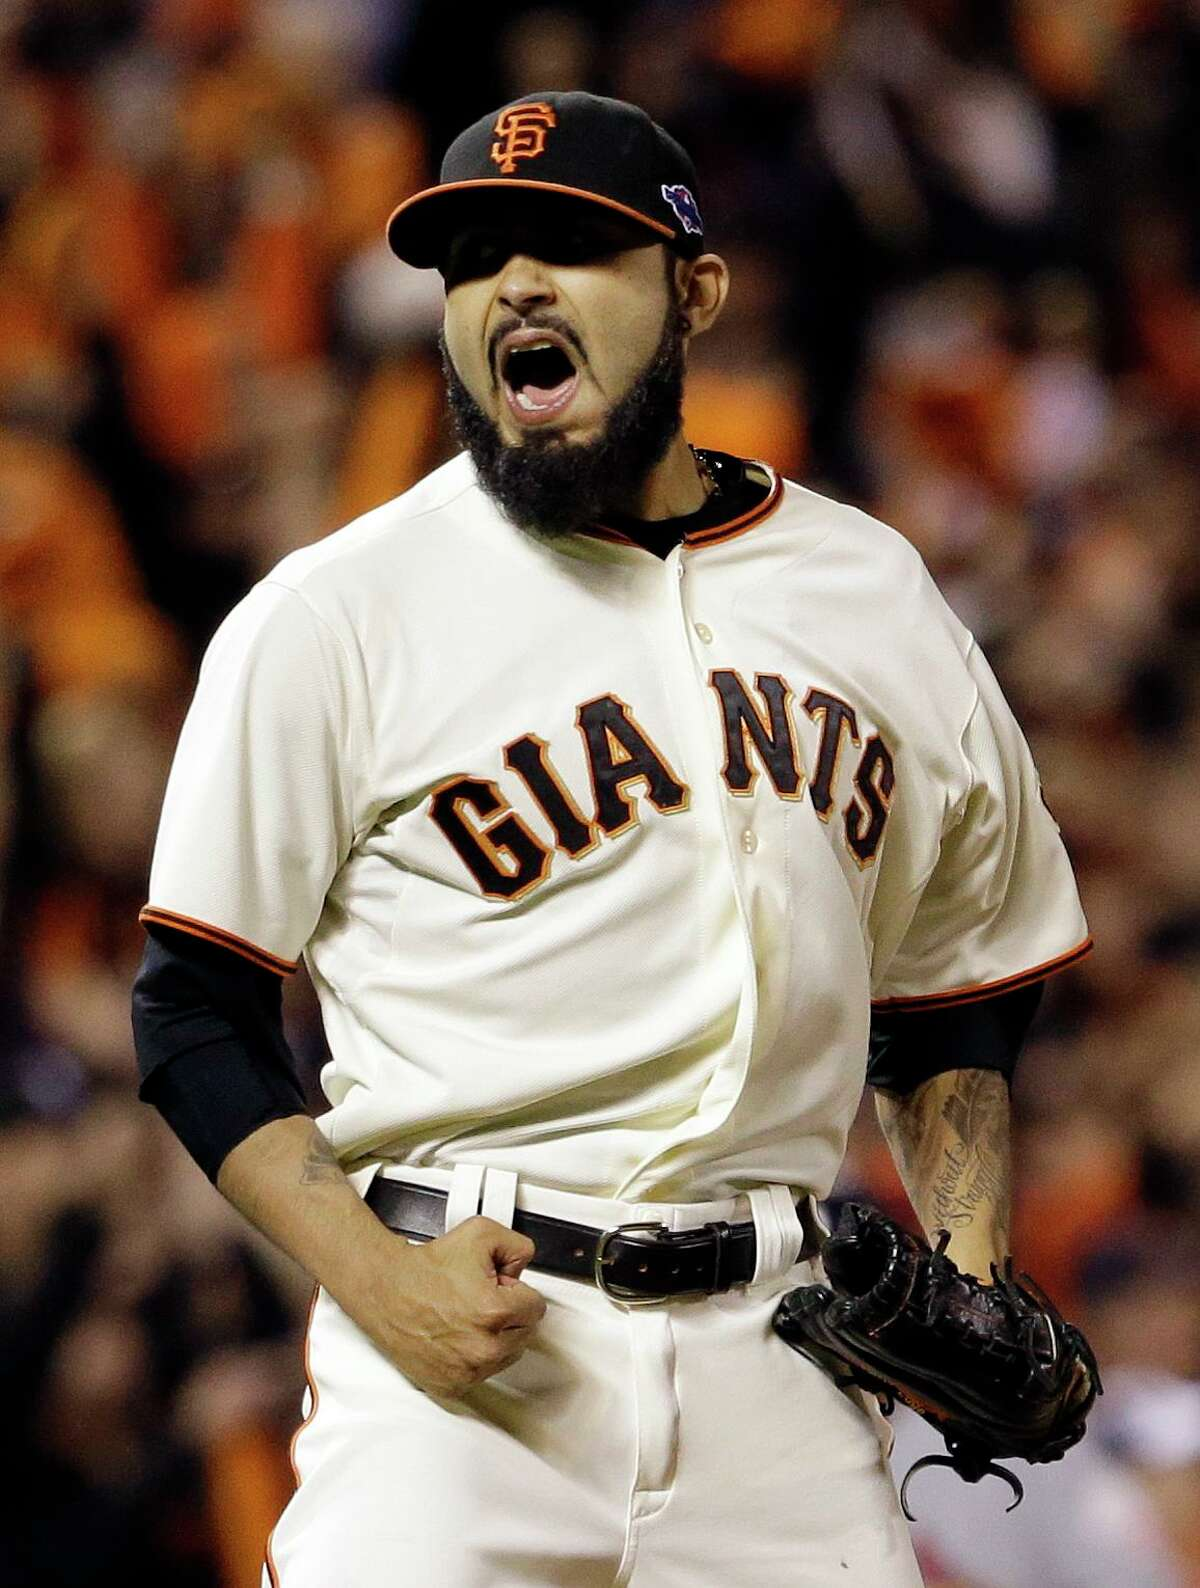 San Francisco Giants relief pitcher Sergio Romo reacts after the final out in the ninth inning of Game 6 of baseball's National League championship series against the St. Louis Cardinals Sunday, Oct. 21, 2012, in San Francisco. The Giants won 6-1 to tie the series at 3-3. (AP Photo/David J. Phillip)